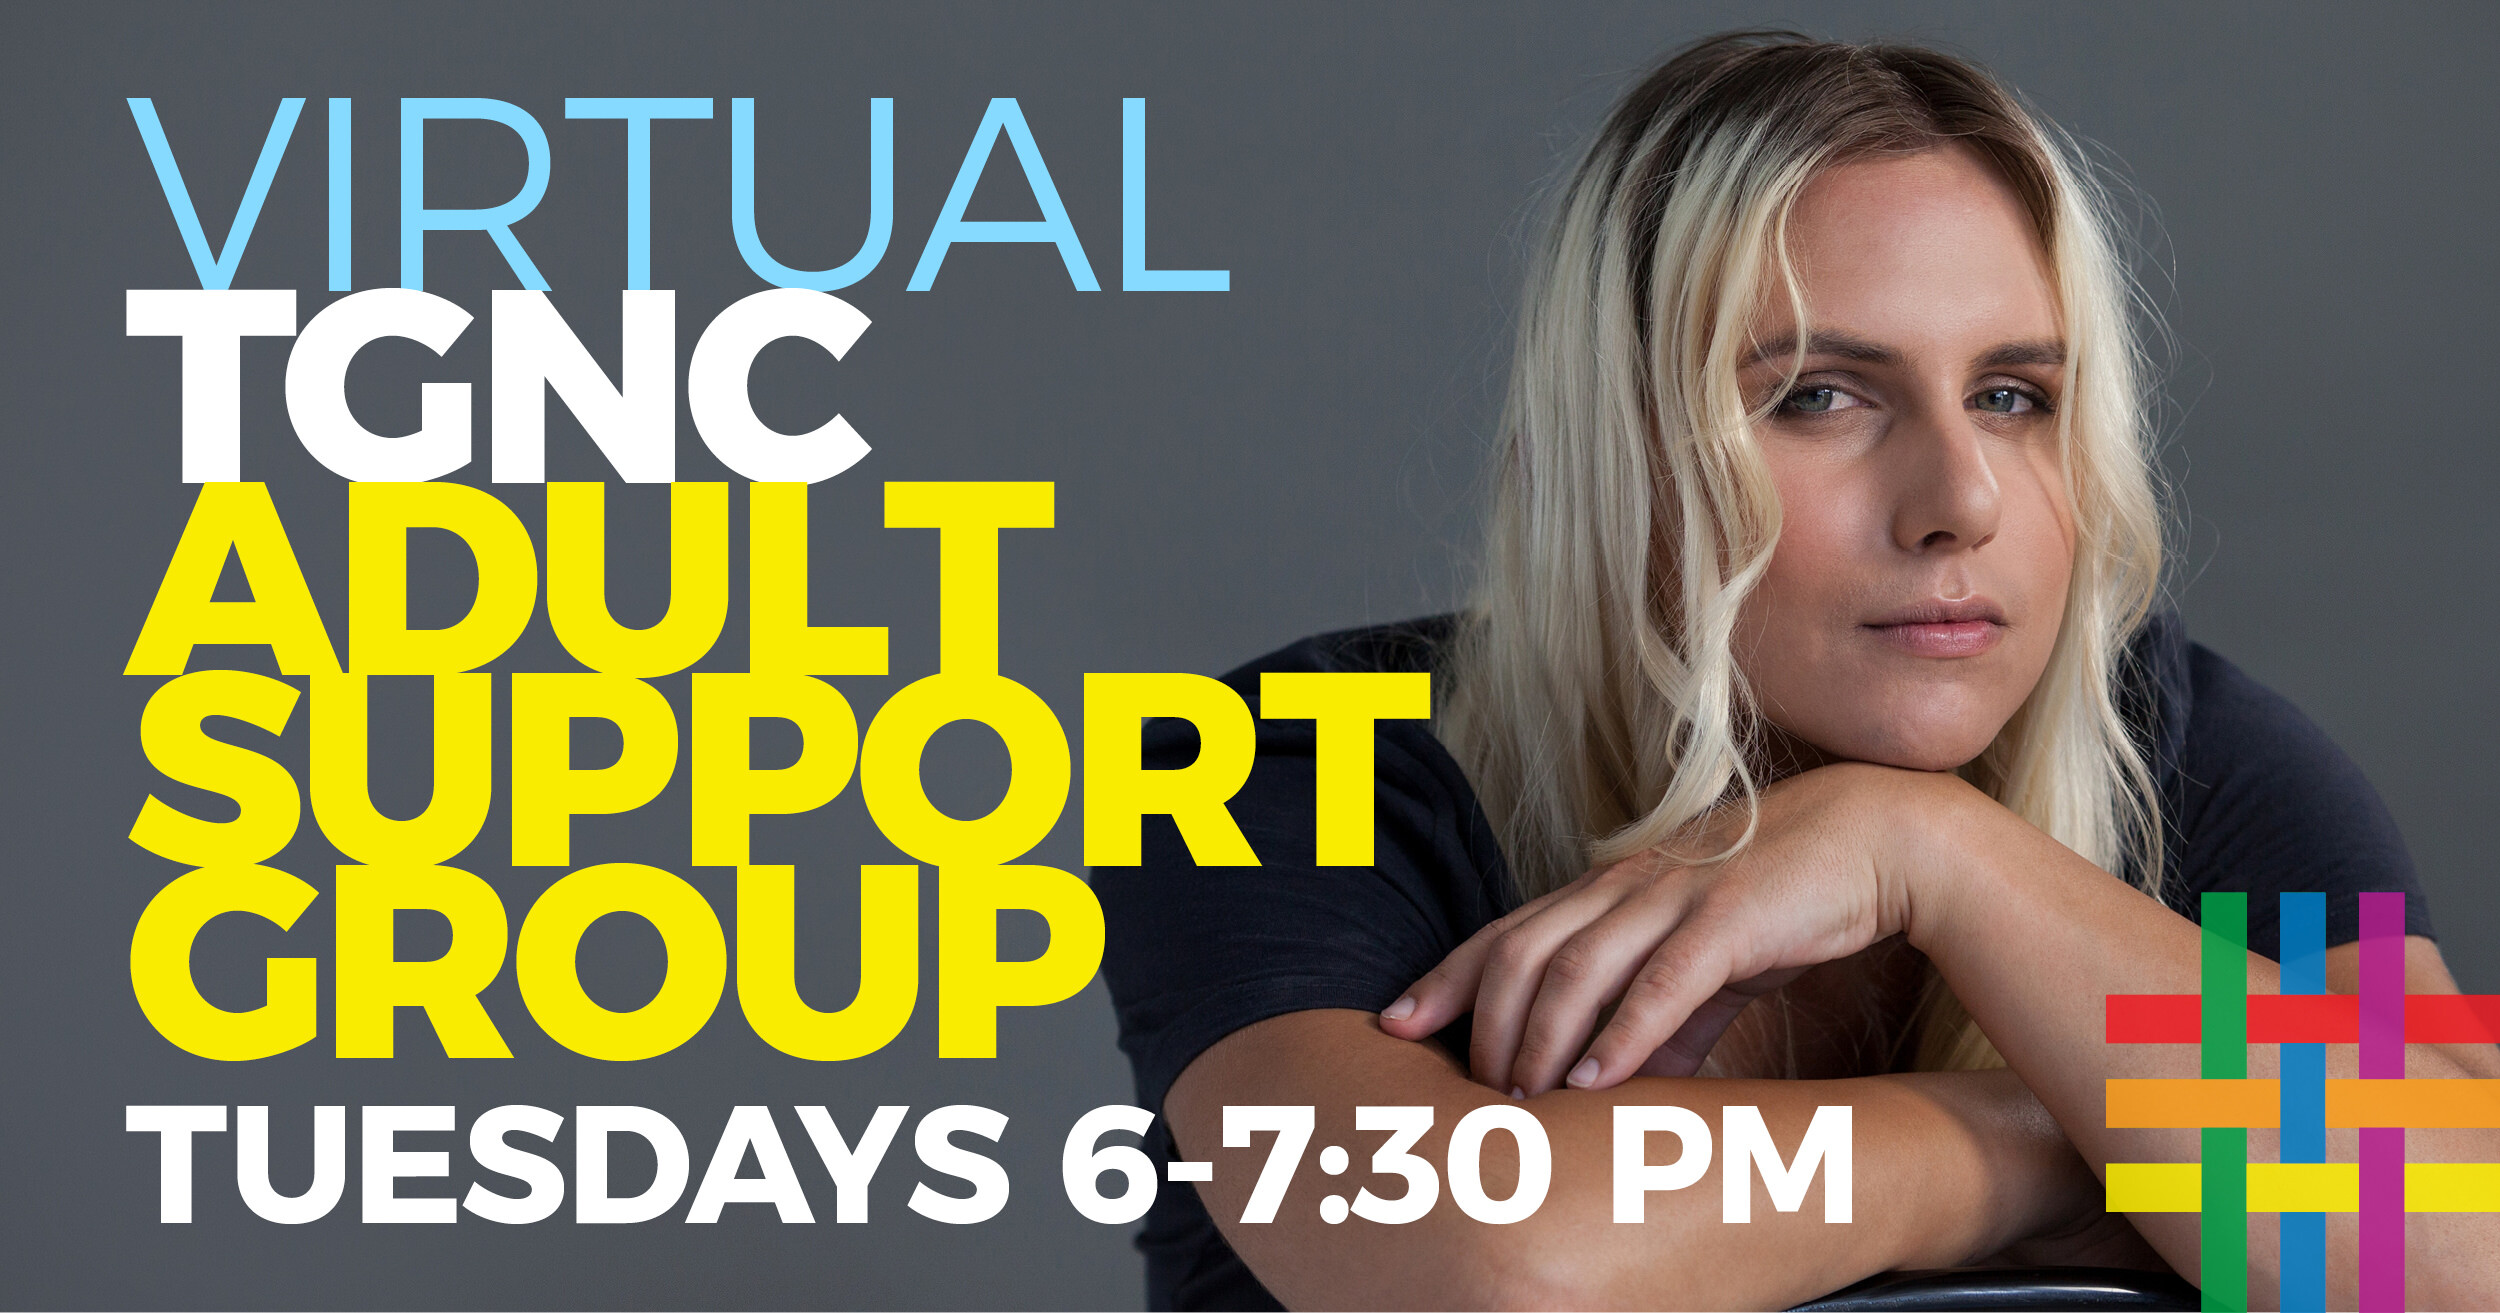 VIRTUAL: TGNC Adult Support Group